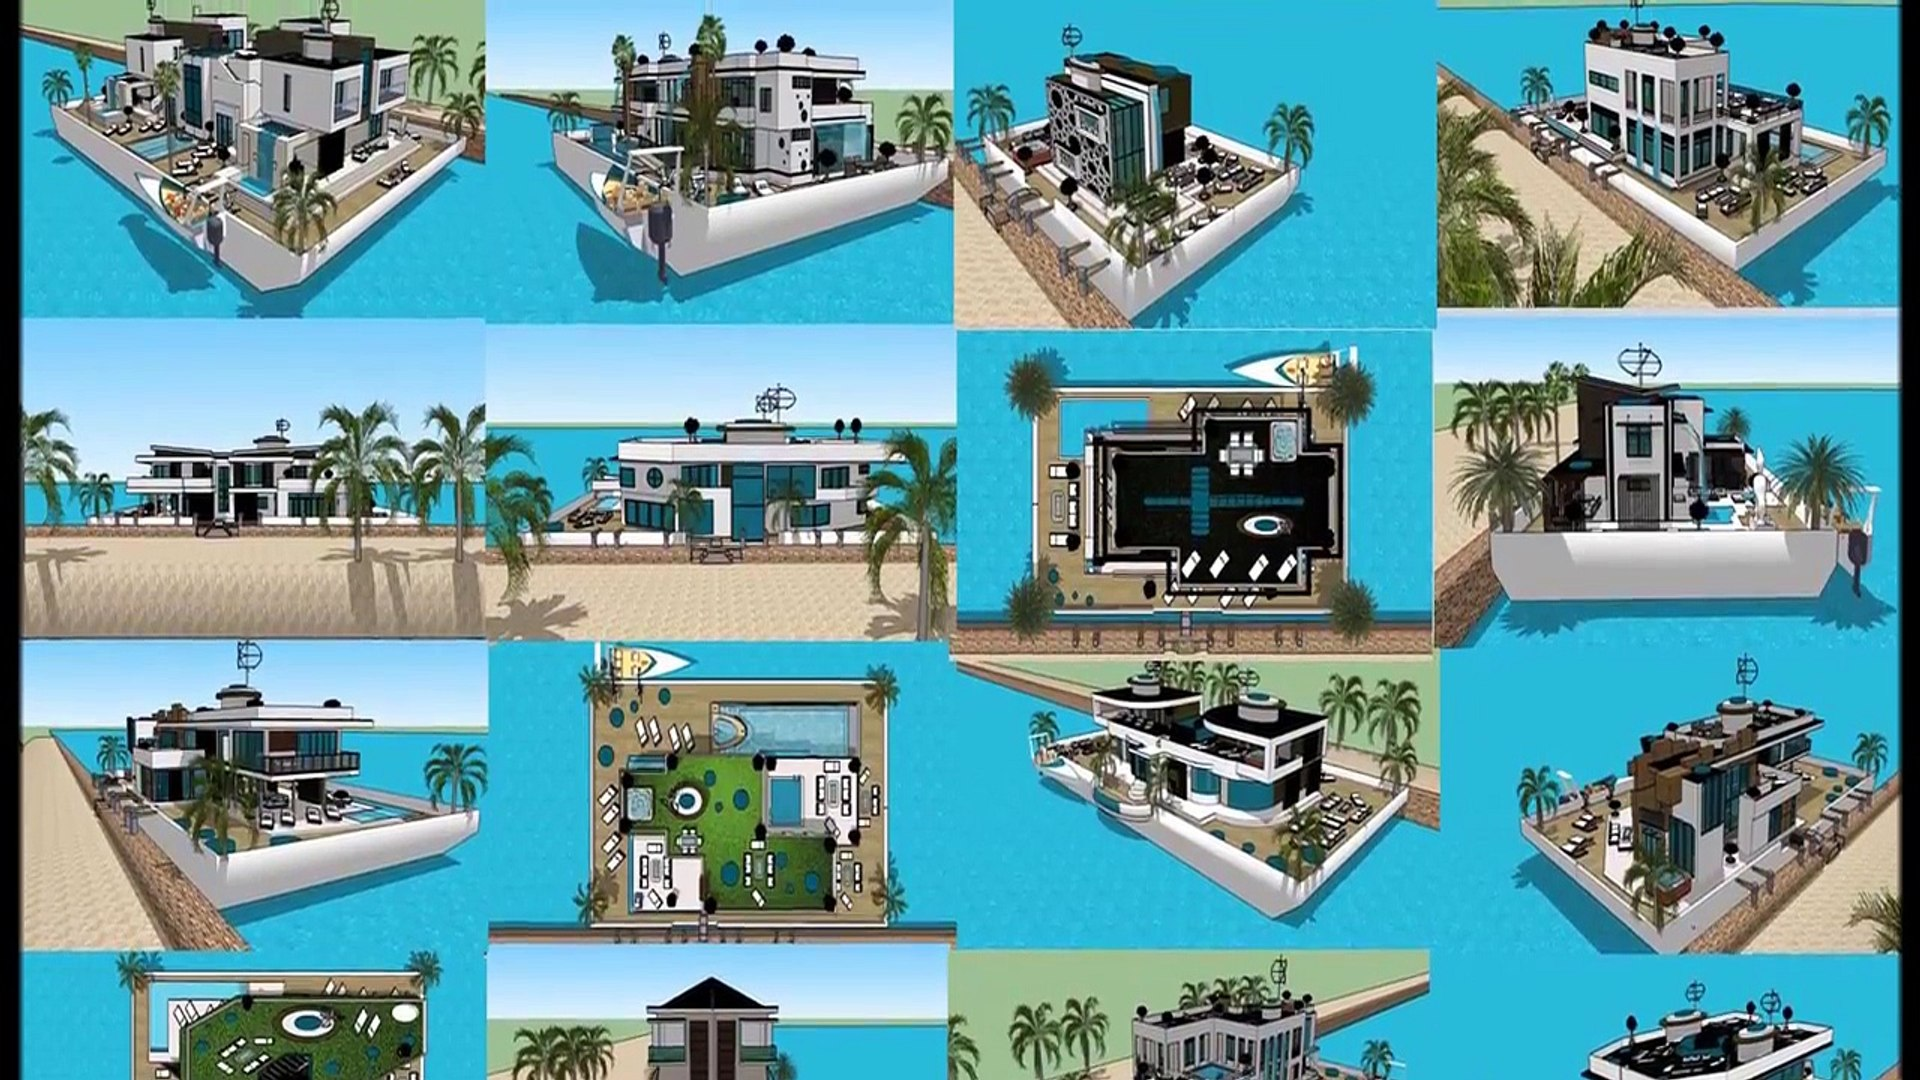 SIMS 3 HOUSEBOATS BUILDING IDEAS HOUSEBOAT PLANS SIMS 4 TOUR DESIGN Future Houseboat Designs on future of boats, future armored vehicles, future navy boats, future space stations, future pontoon boats, future animals, future cruisers, future race boats, future boat design, future speed boats, future architecture concepts, future cargo boats, future boats yachts, future seaplanes, future atv, future technology, future townhouses, future power boats, future homes,